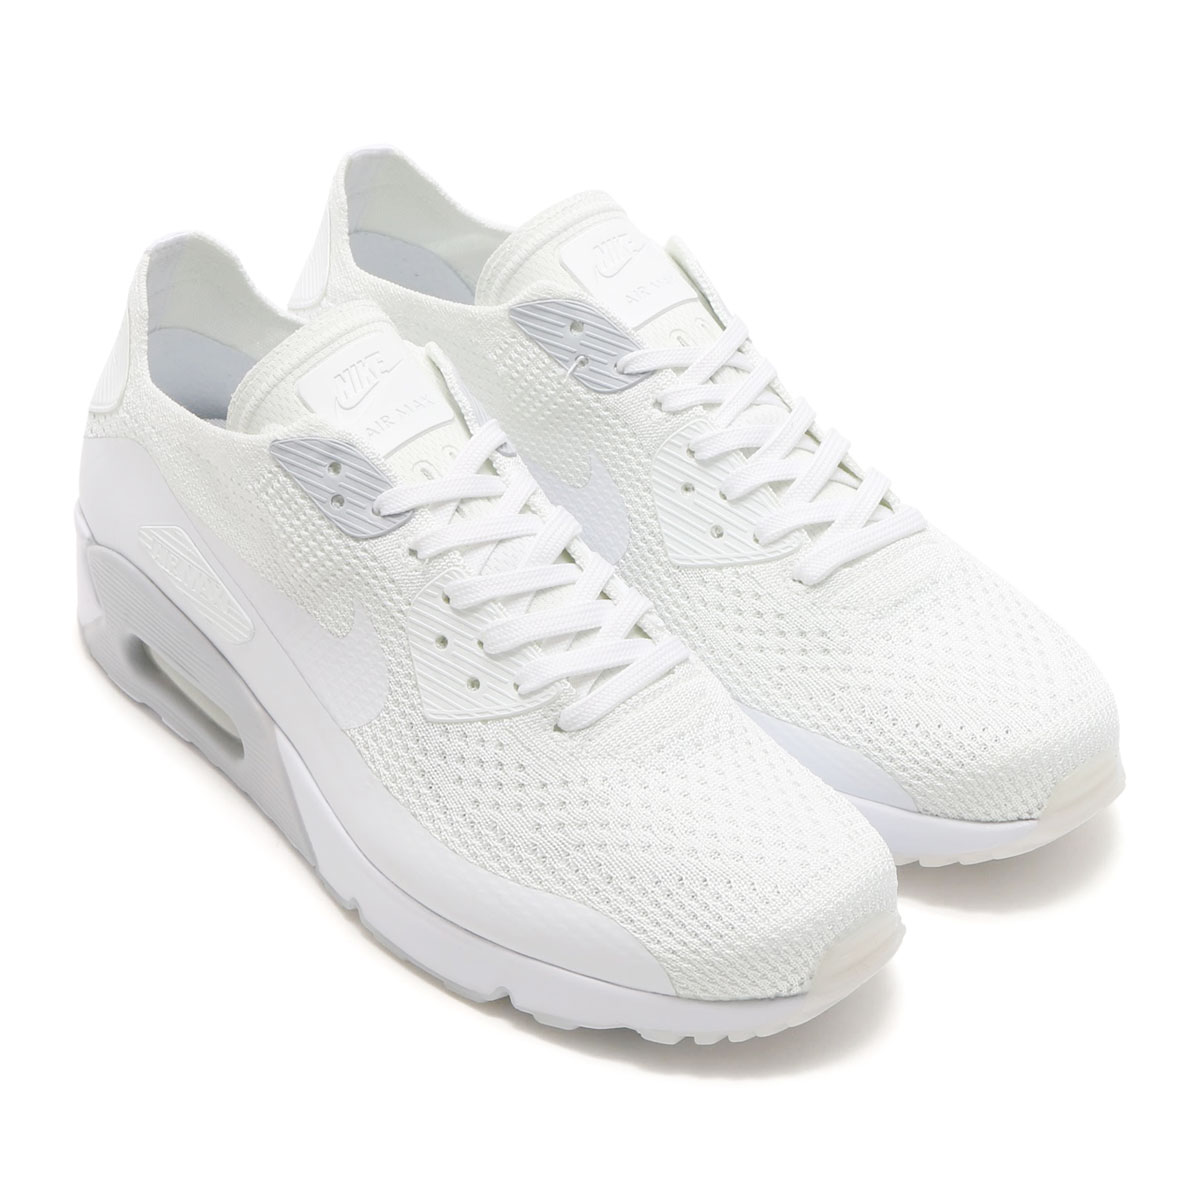 wholesale dealer 69177 5f61a sweden nike air max 90 ultra 2.0 flyknit pure platinum dbe45 ...